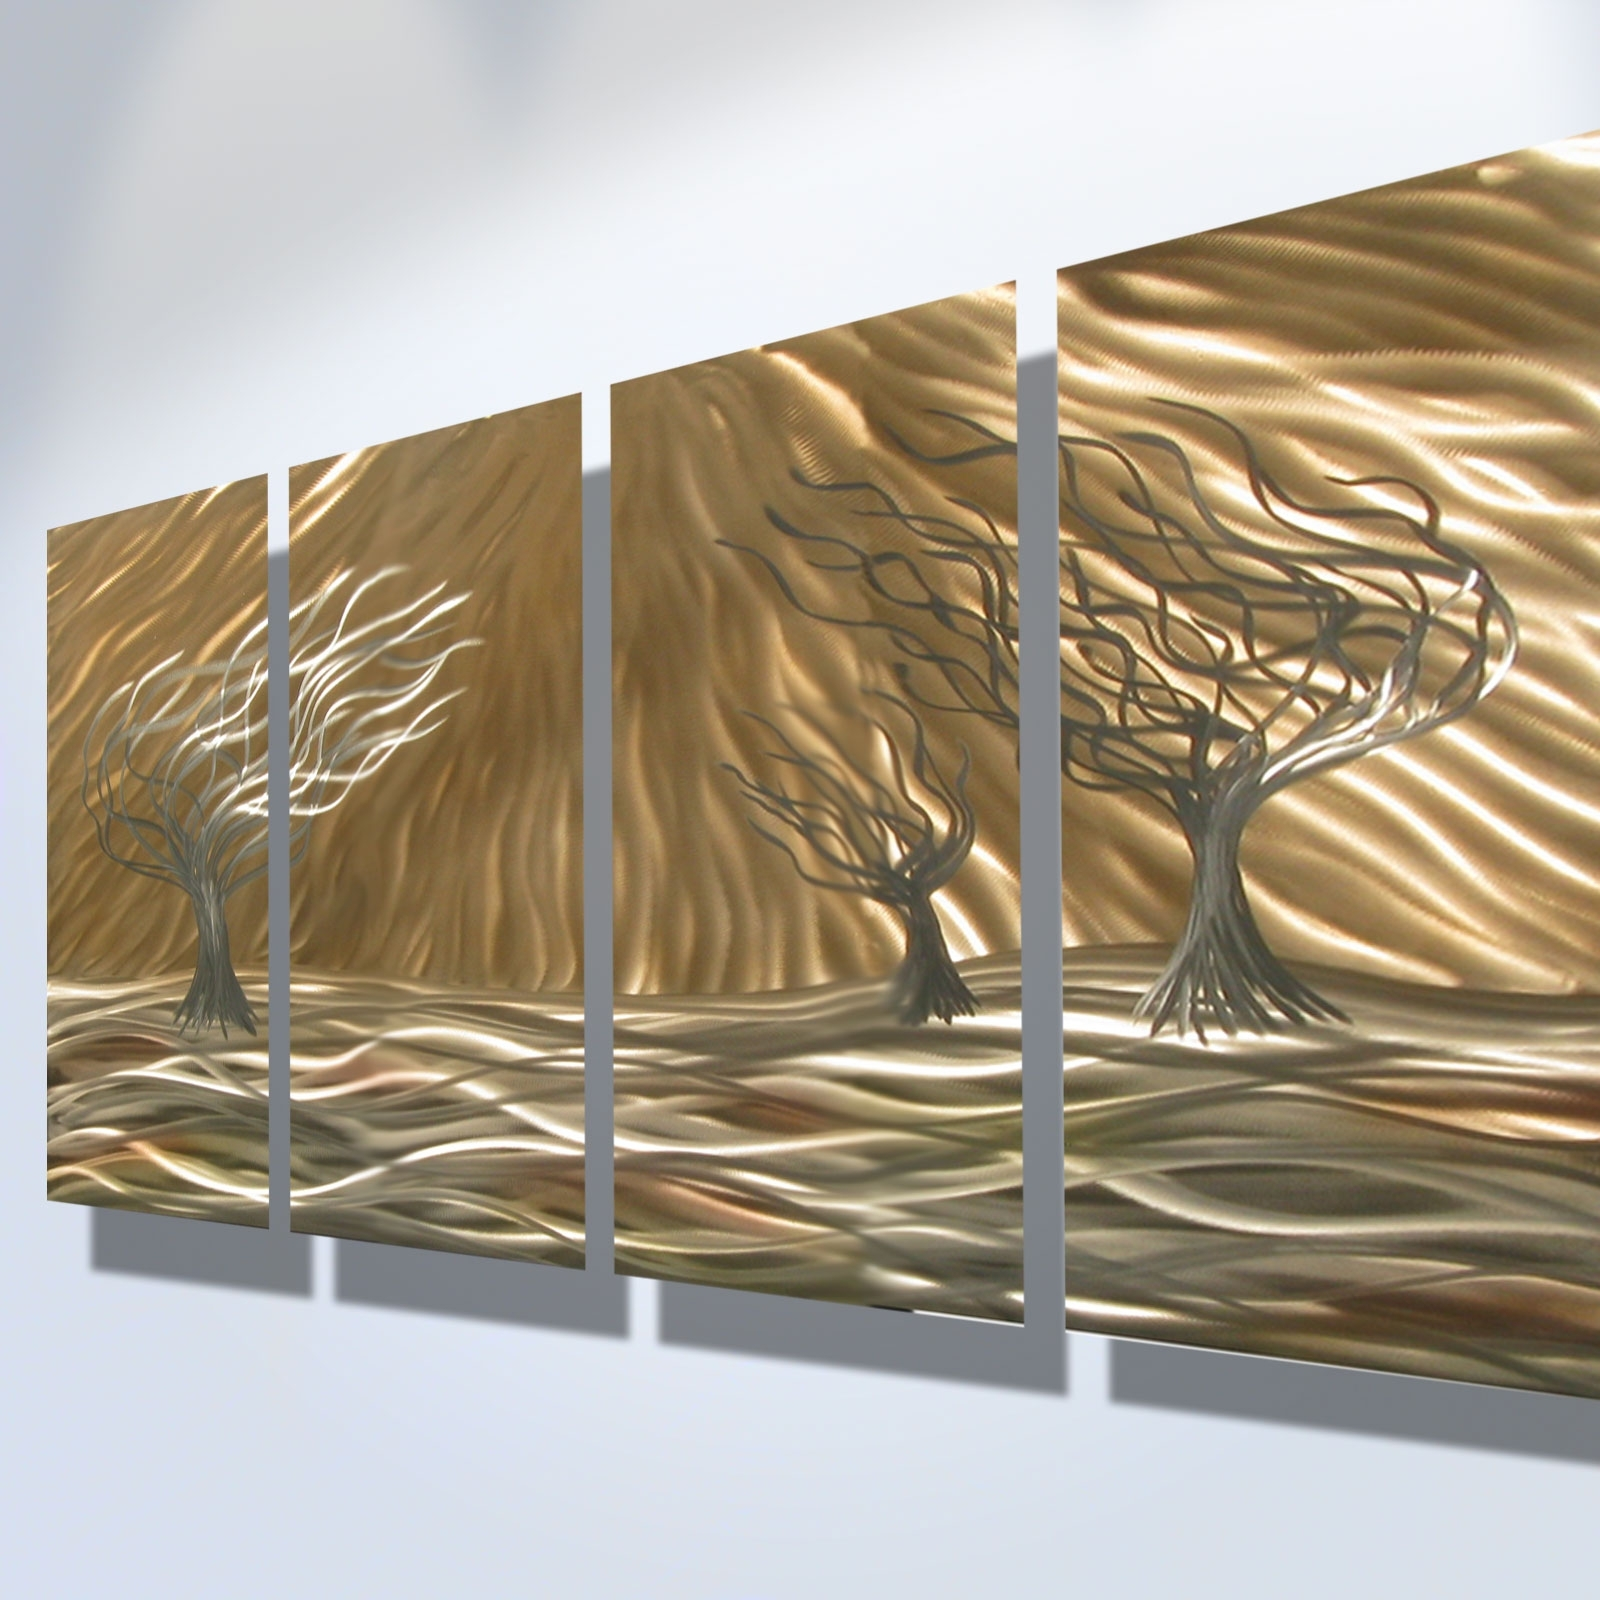 3 Trees 4 Panel – Abstract Metal Wall Art Contemporary Modern With Recent Abstract Metal Wall Art Panels (View 2 of 20)